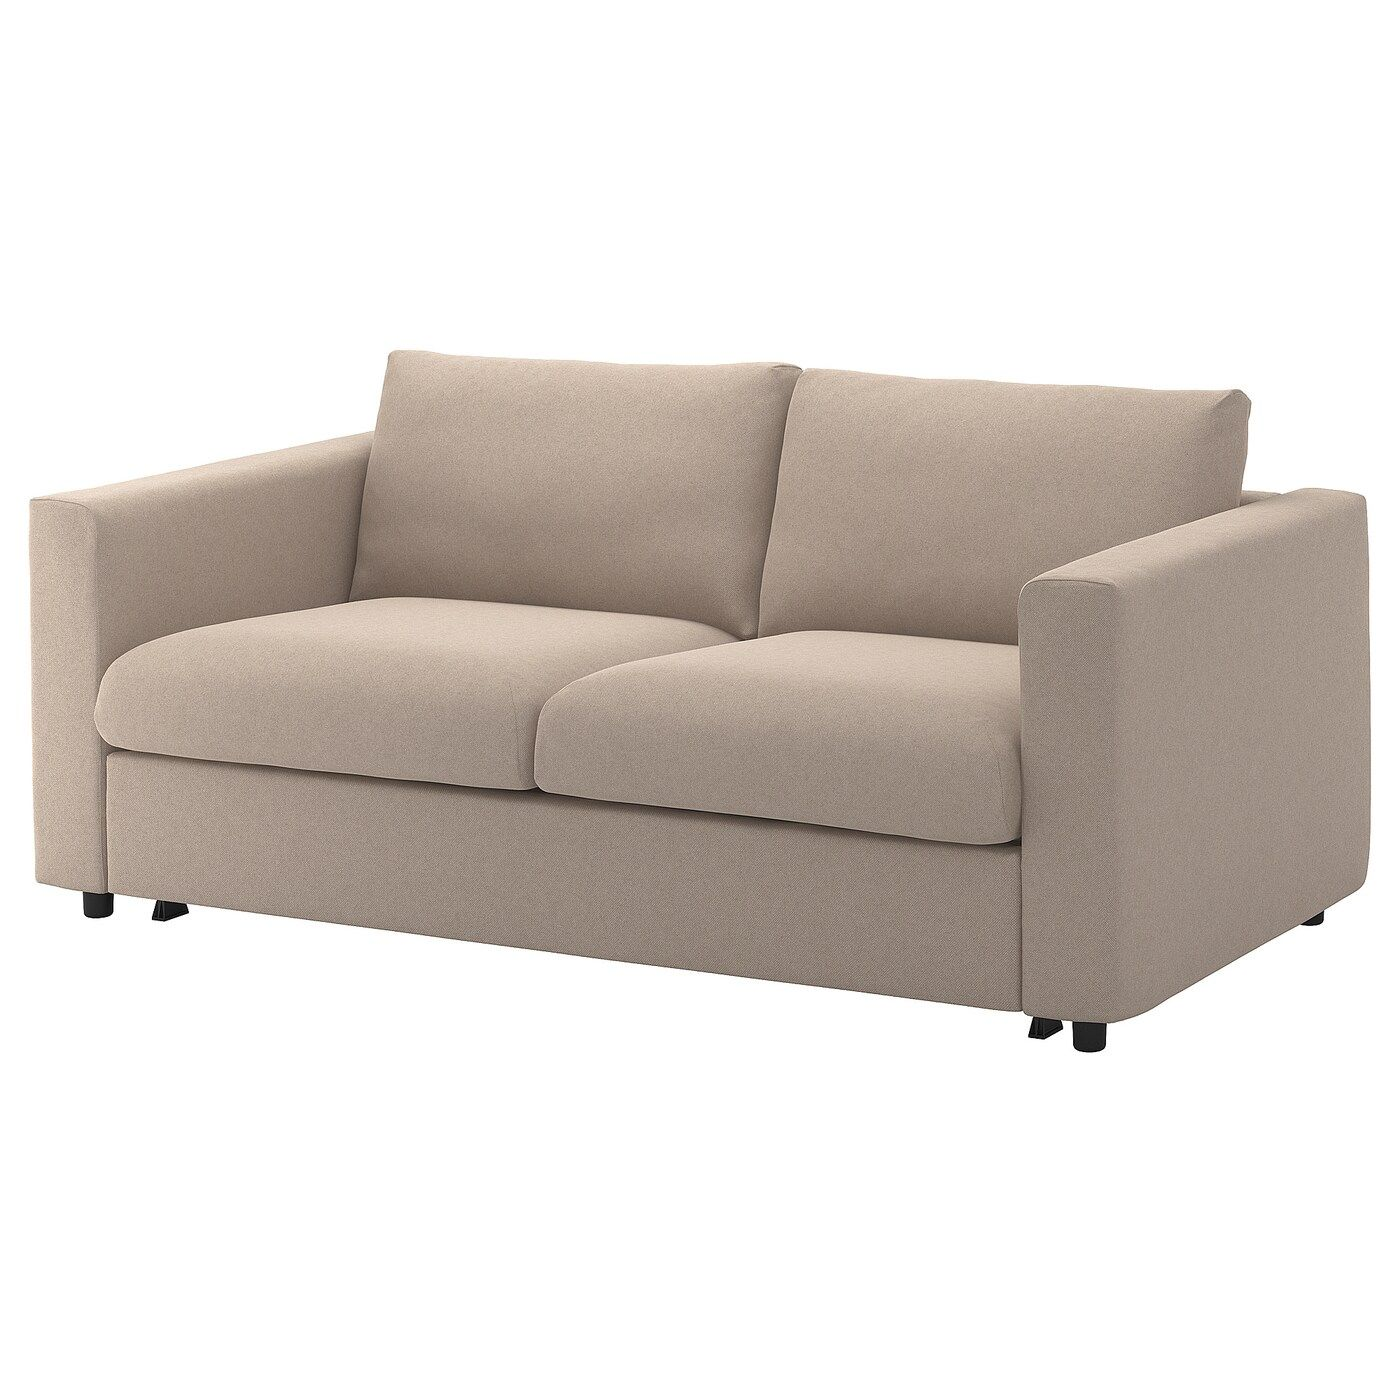 Bettsofa Angebot